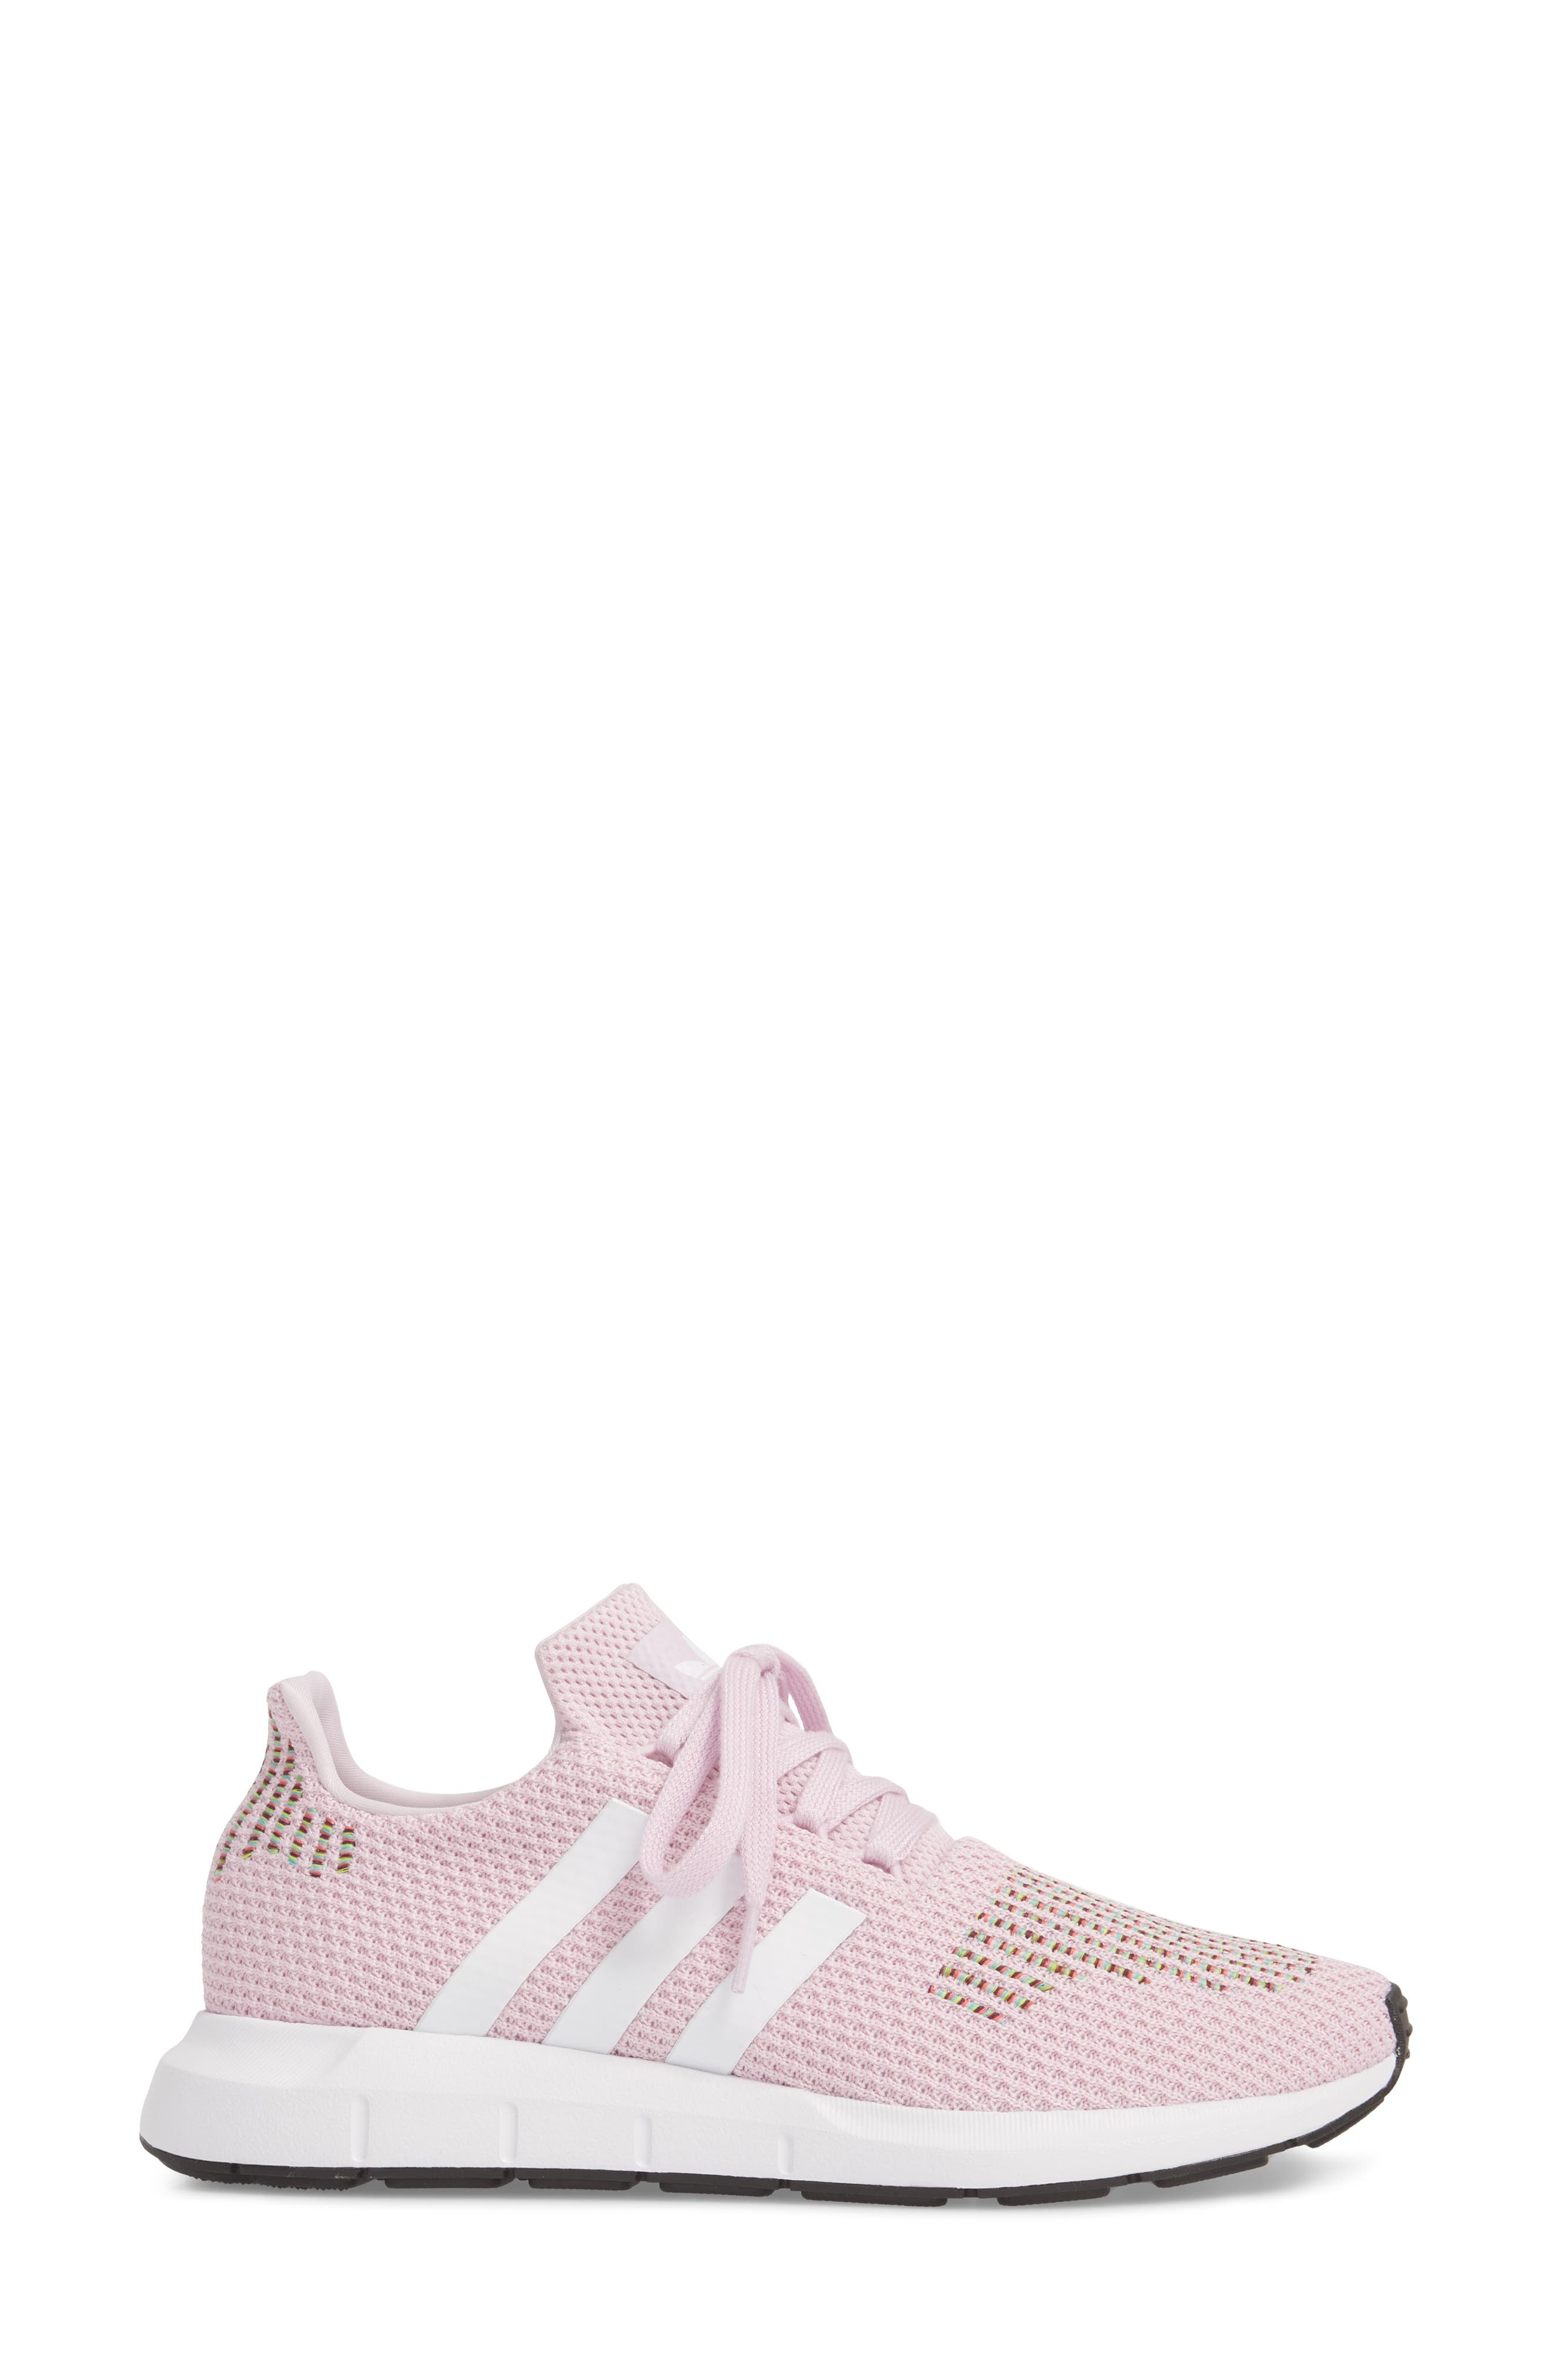 Swift Run Sneaker,                             Alternate thumbnail 3, color,                             Aero Pink/ White/ Core Black